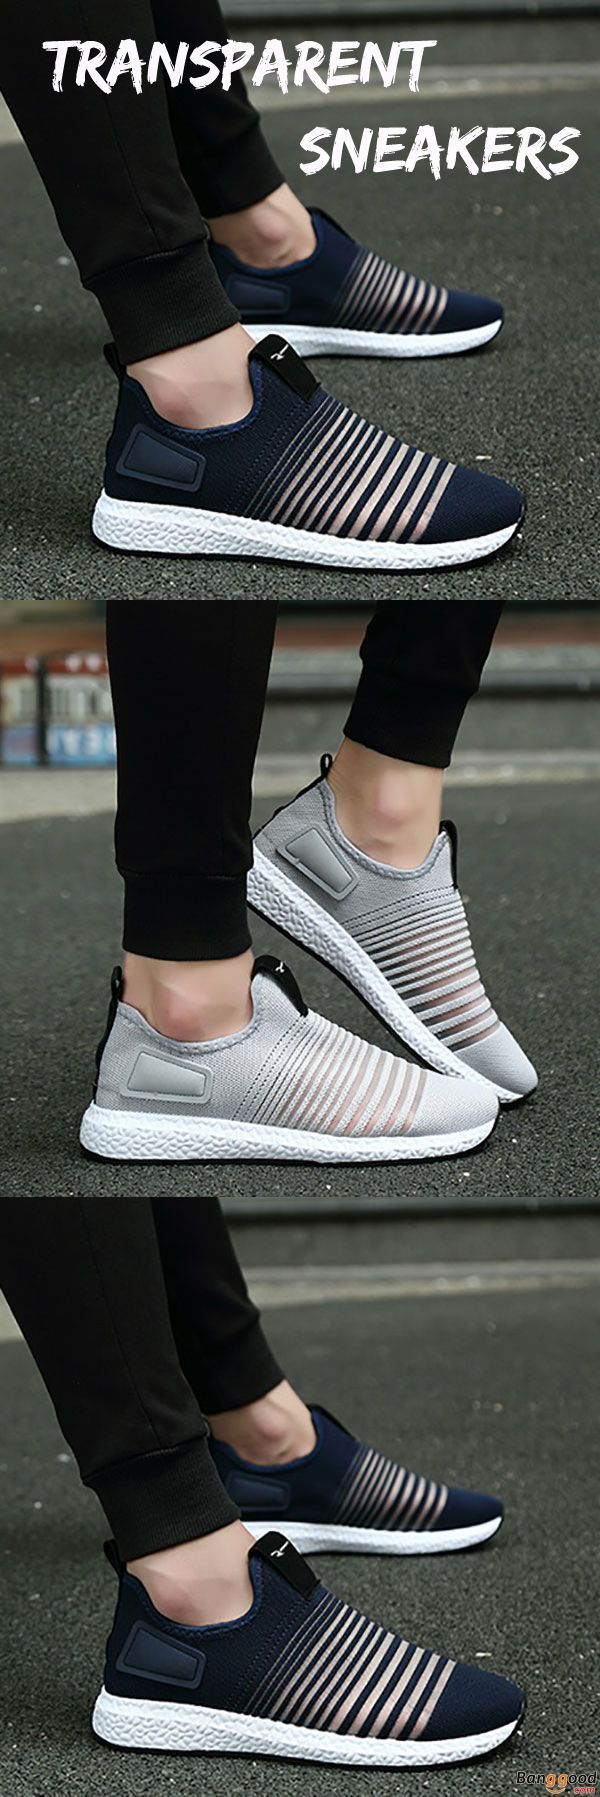 Nice Mens Summer Fashion US$31.06 + Free shipping. Men Sneakers, Mesh Sneakers, Slip On Sneakers, Casual ... Check more at http://24store.cf/fashion/mens-summer-fashion-us31-06-free-shipping-men-sneakers-mesh-sneakers-slip-on-sneakers-casual/